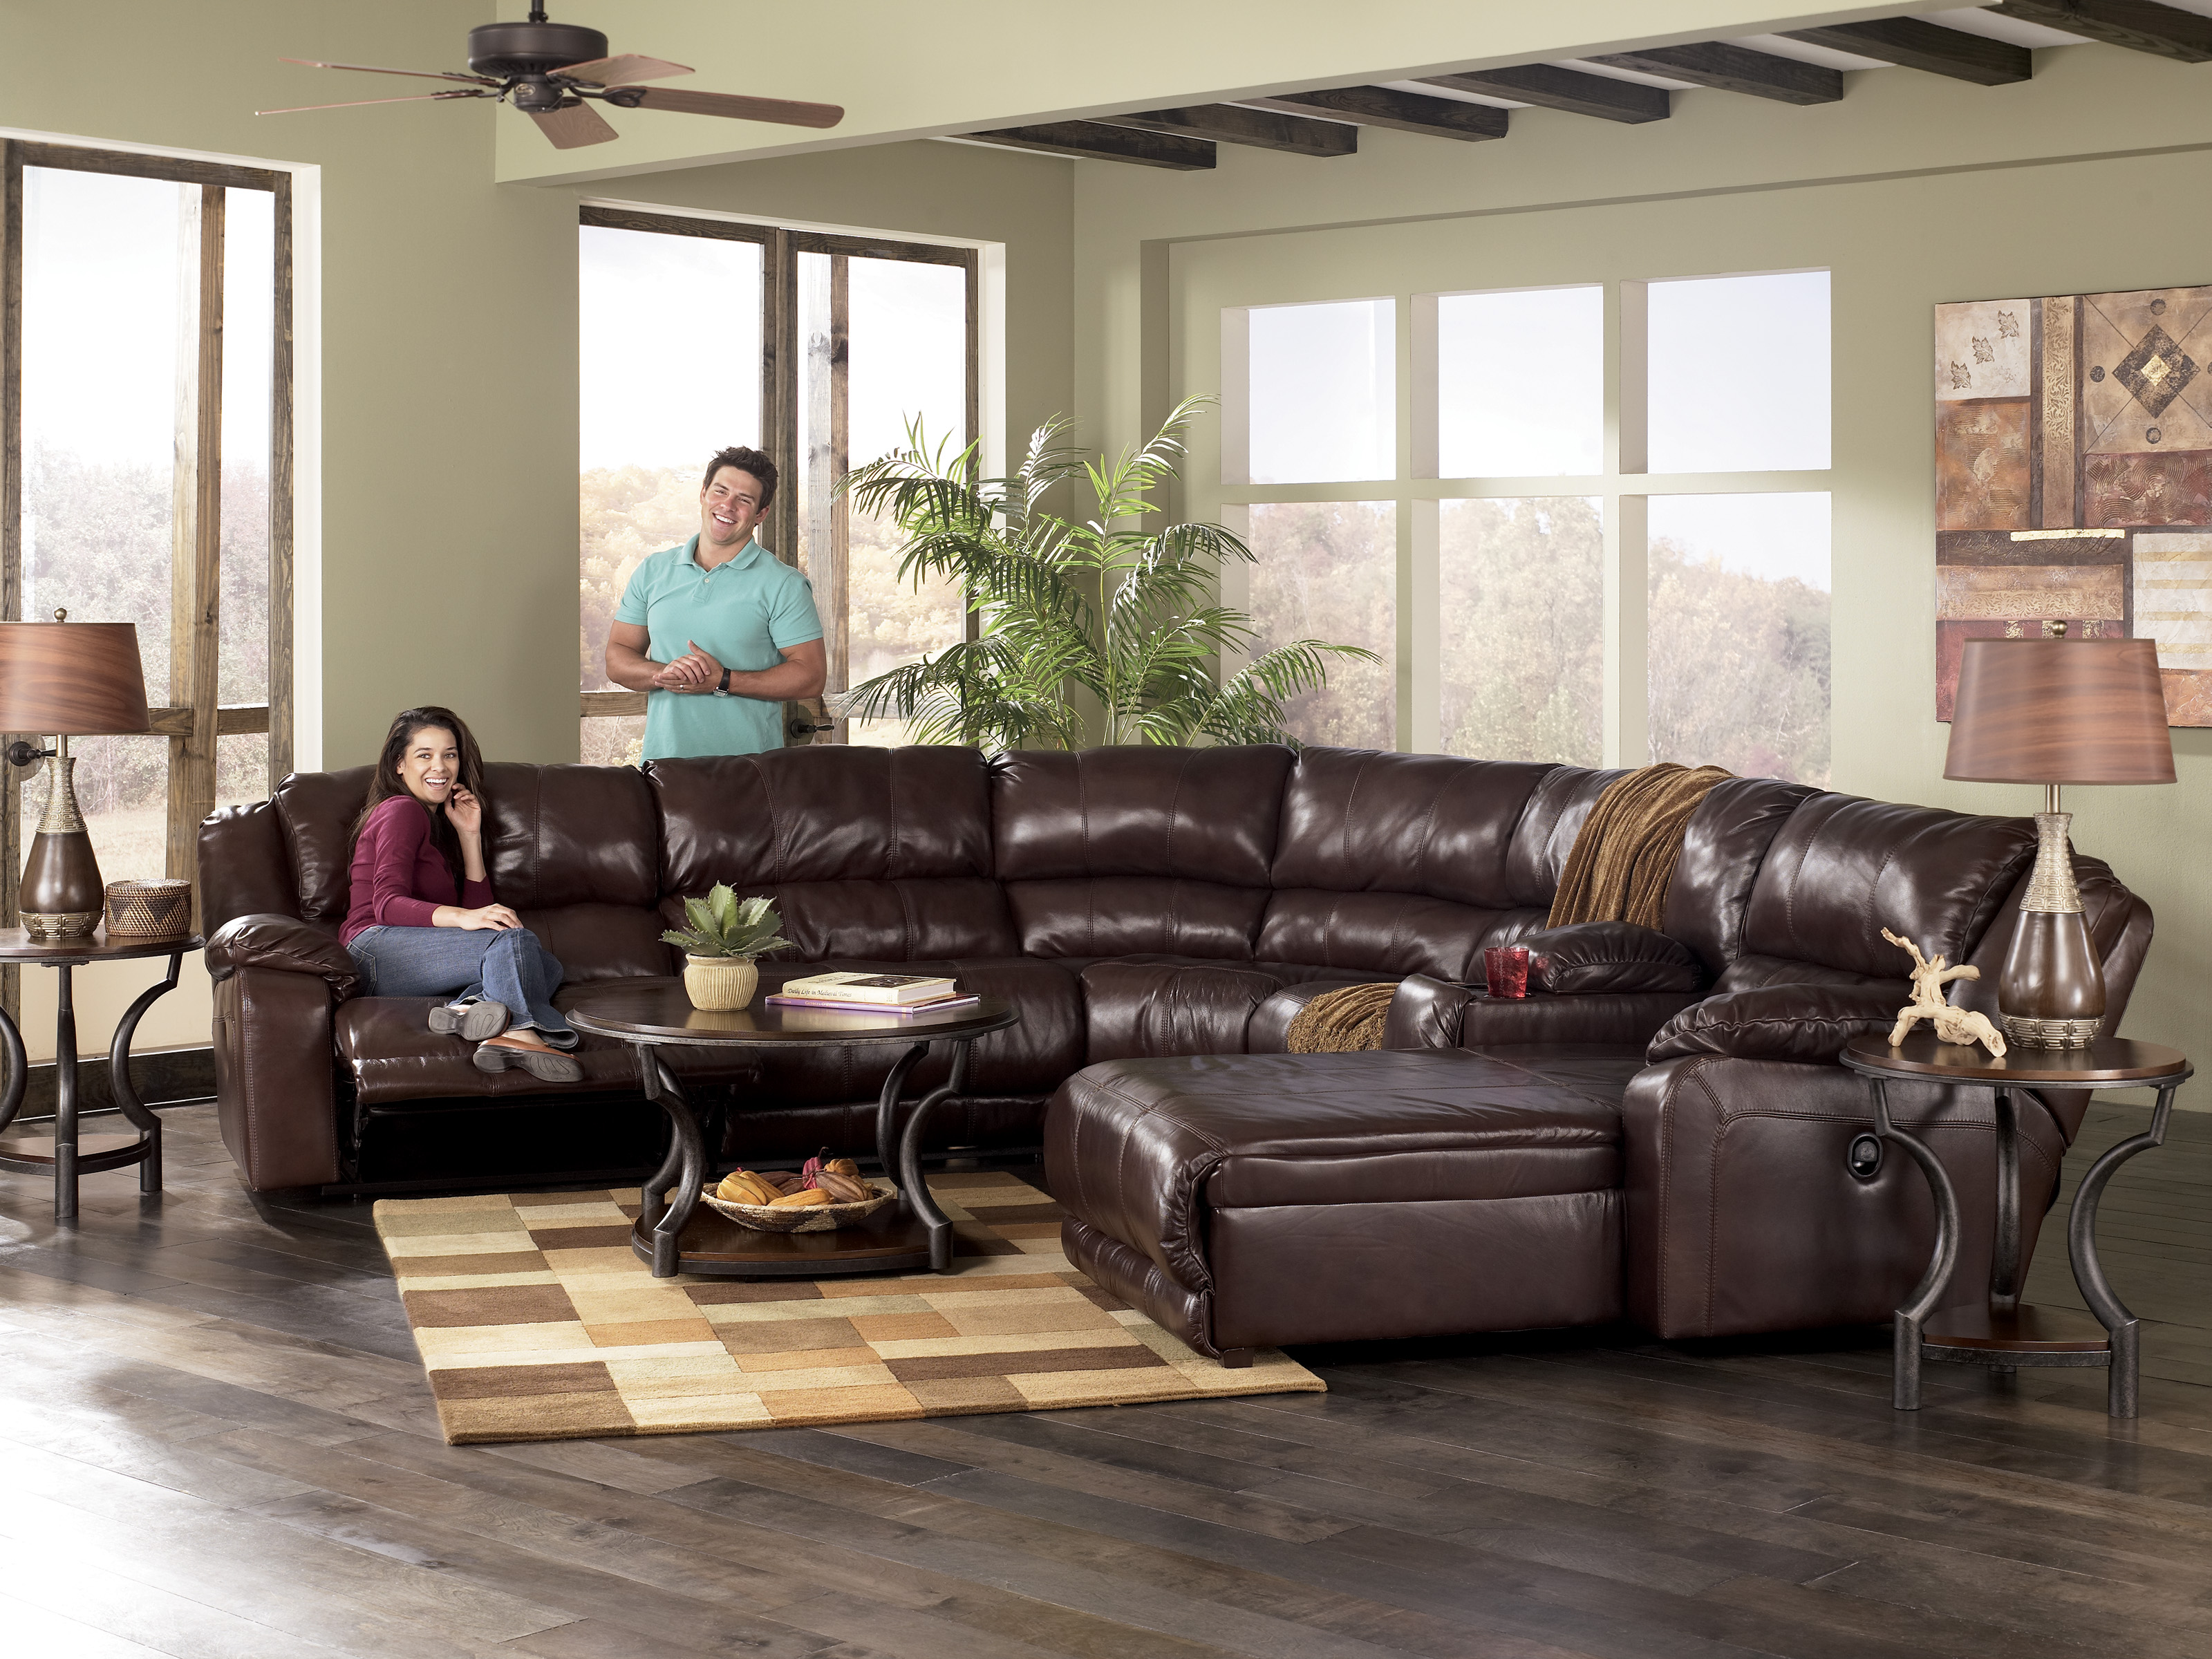 Ashley Furniture Couch Reviews Home Design Ideas and